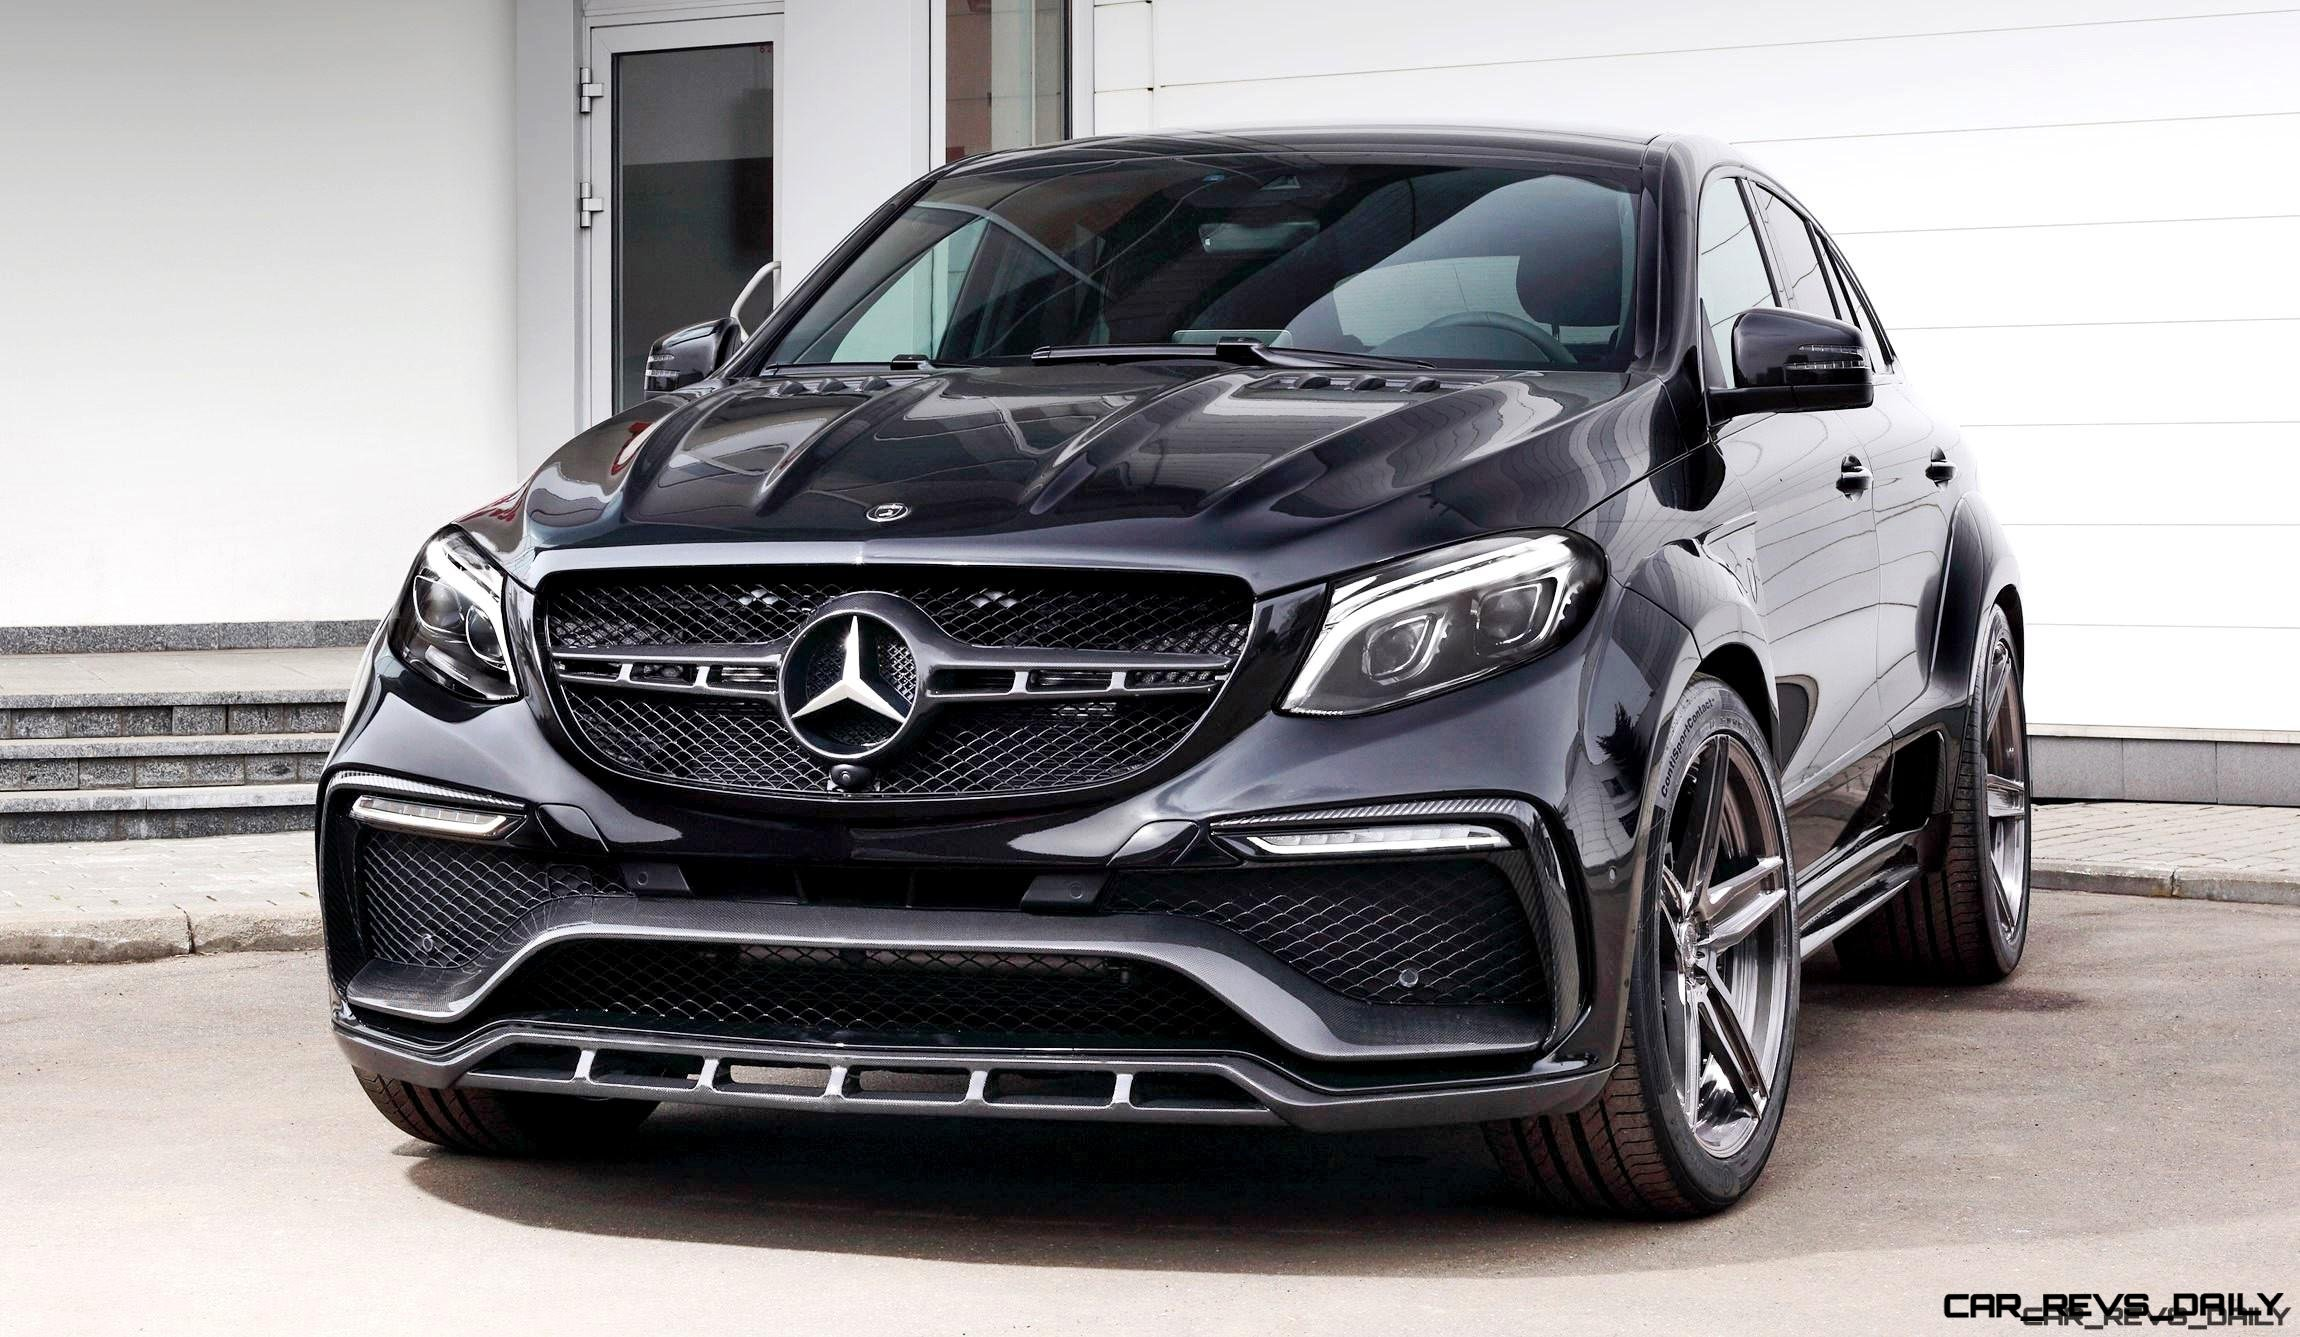 topcar gle inferno coupe wide low and ready to brawl. Black Bedroom Furniture Sets. Home Design Ideas